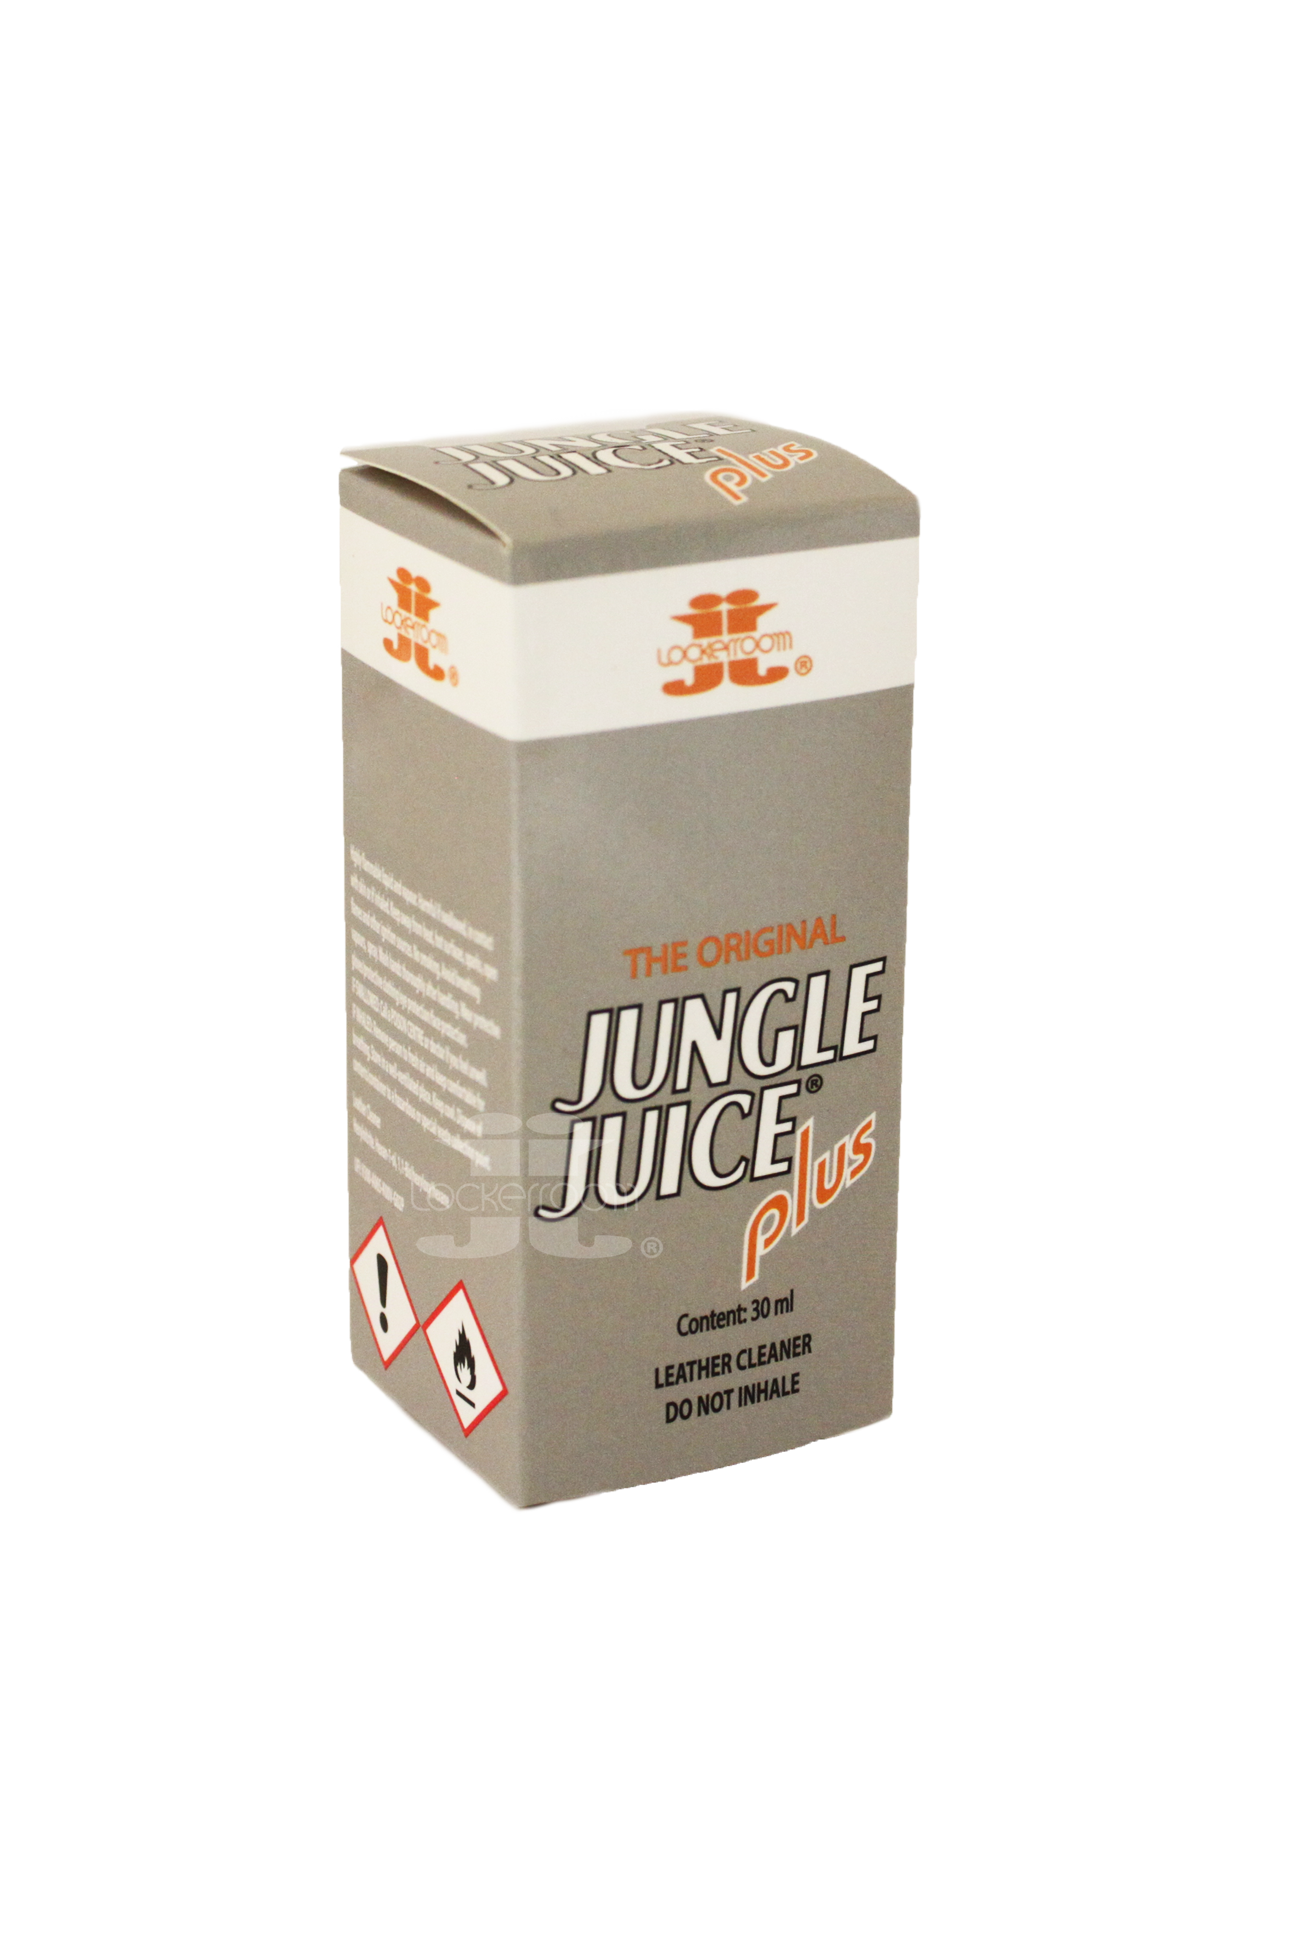 Jungle Juice Plus 30mL Box NEW